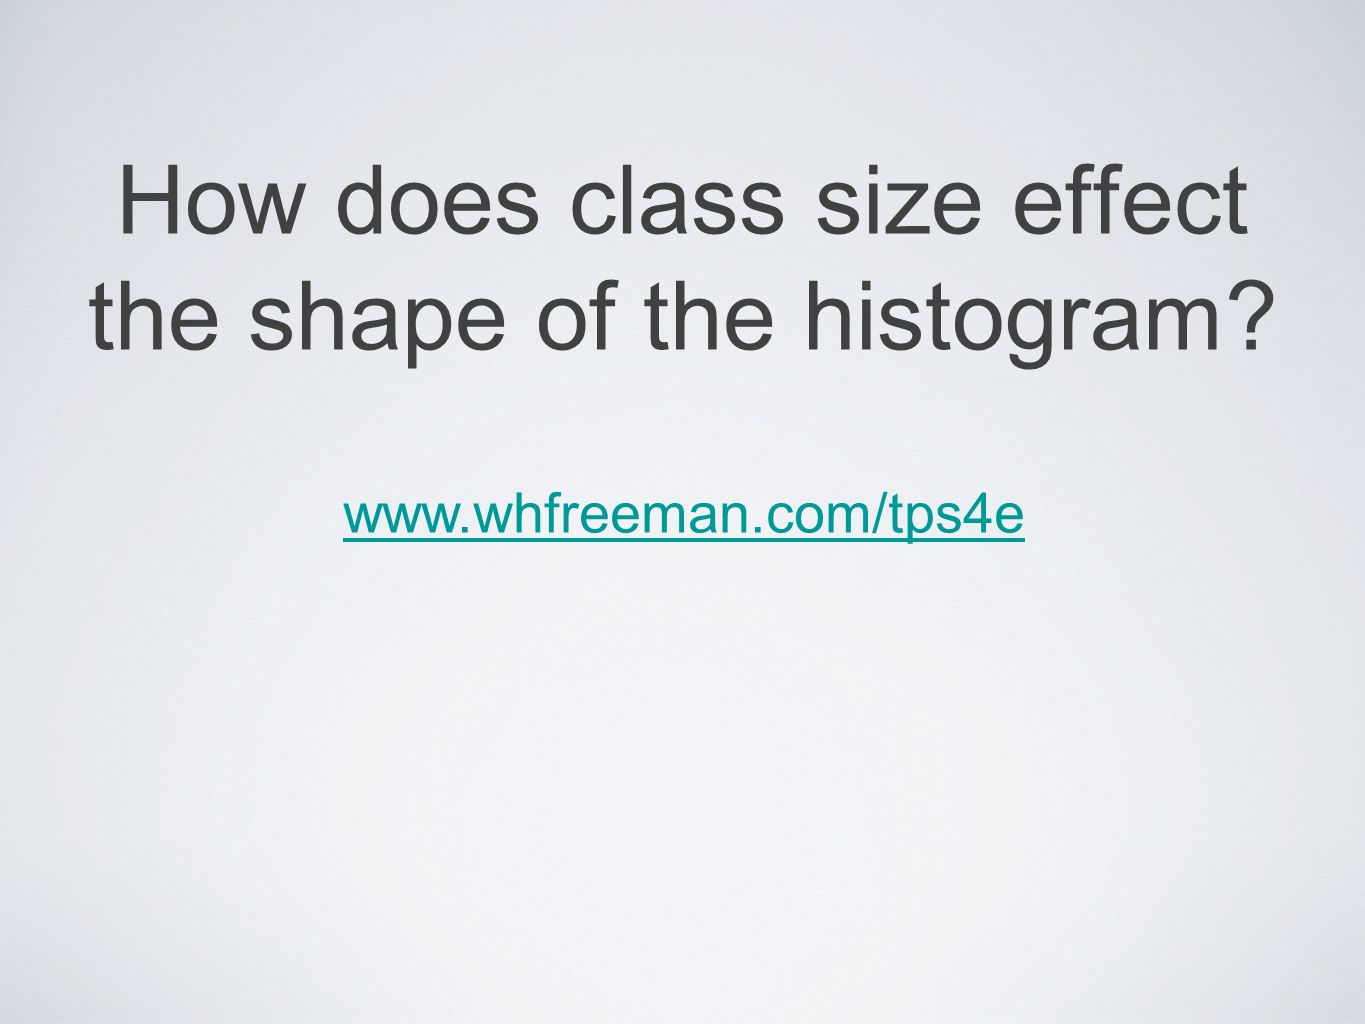 How does class size effect the shape of the histogram